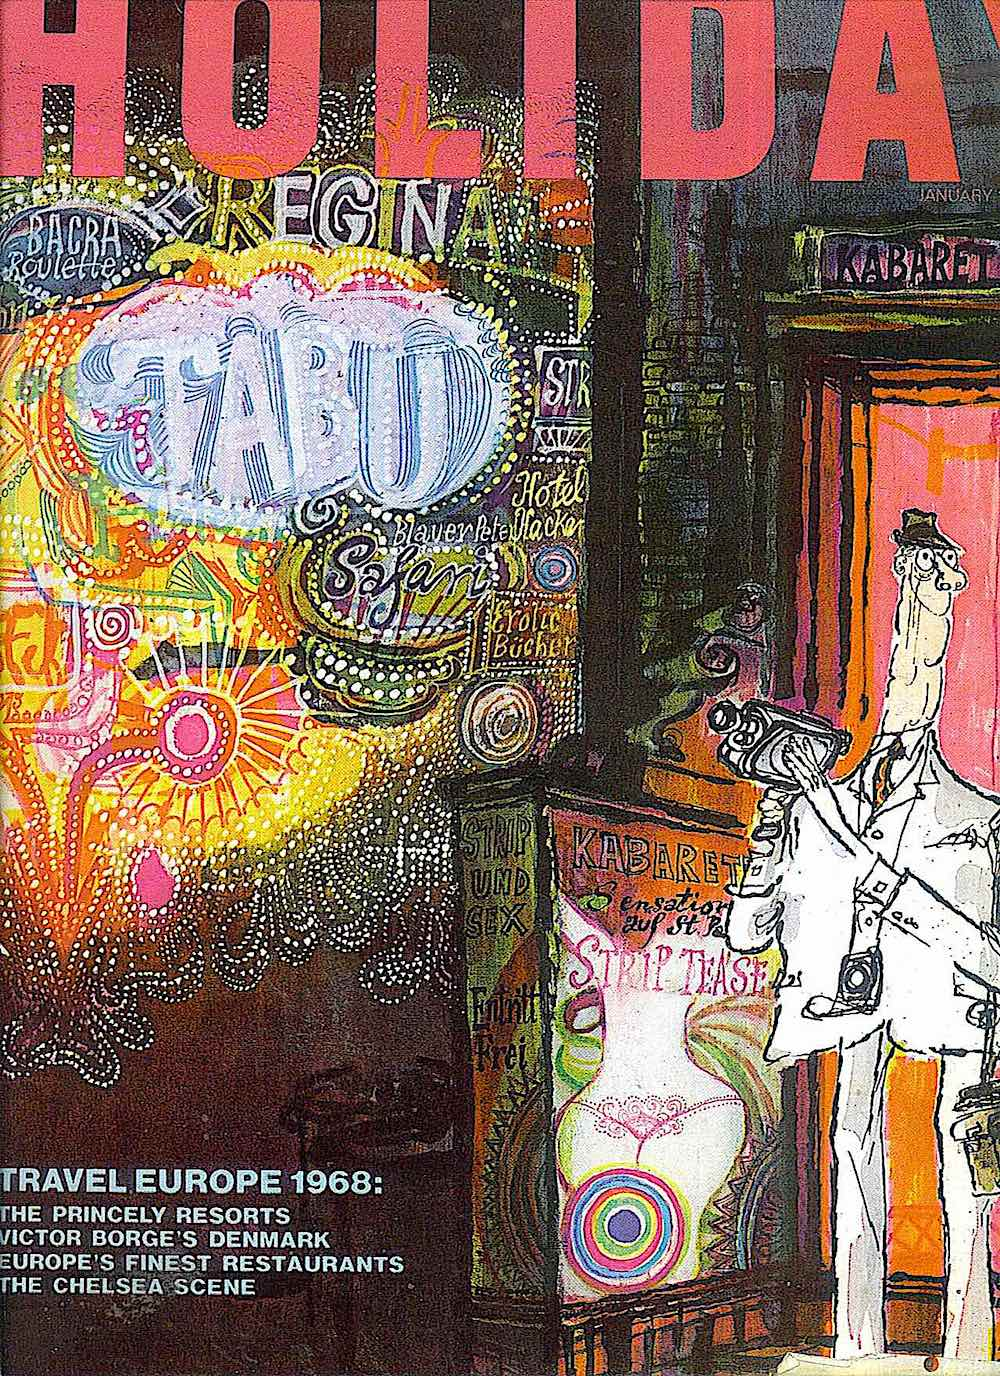 Ronald Searle for Holiday magazine 1968, a square tourist in Europe sex nightlife